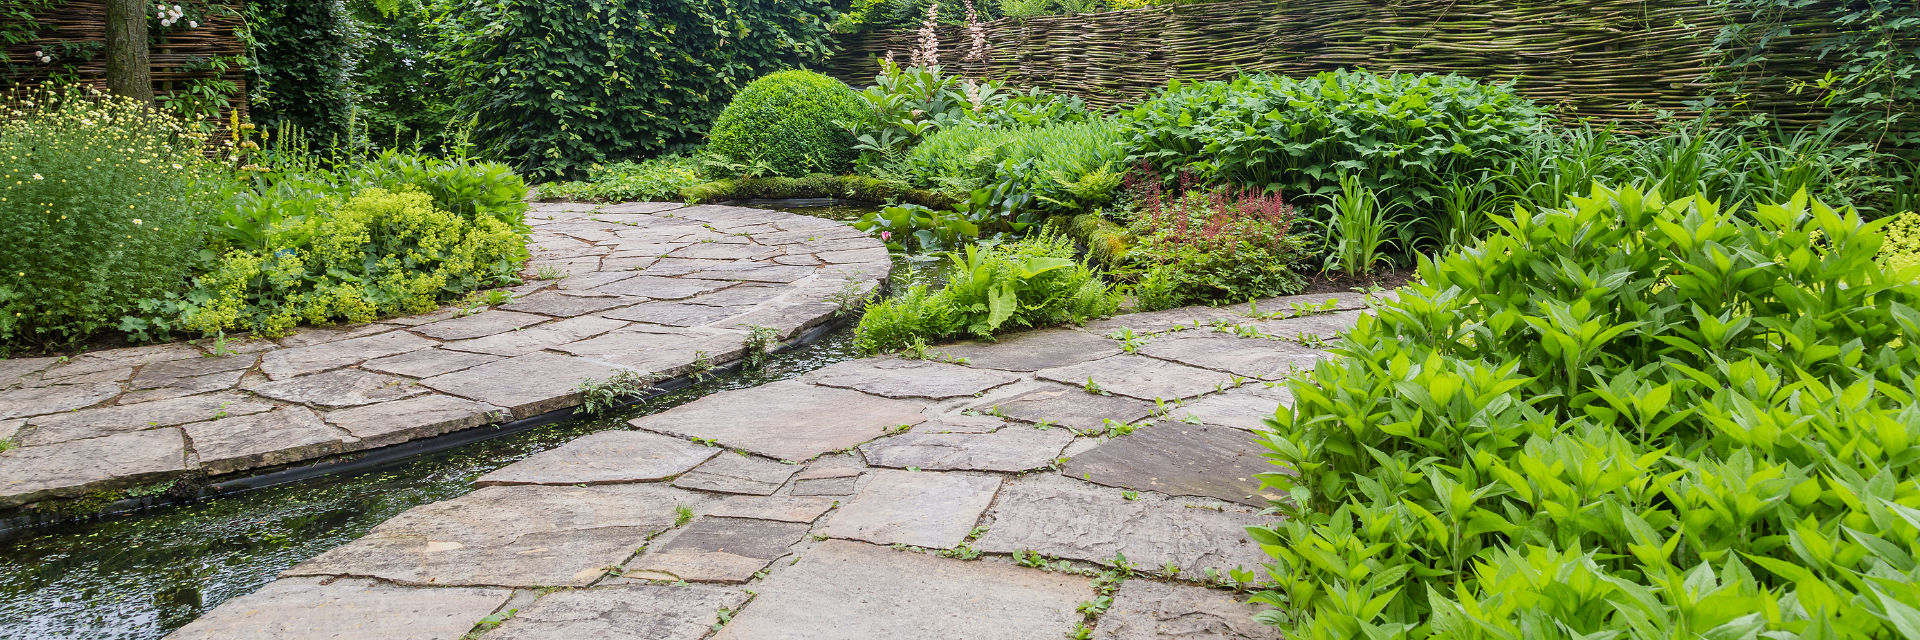 A landscaped garden with hardscapes.